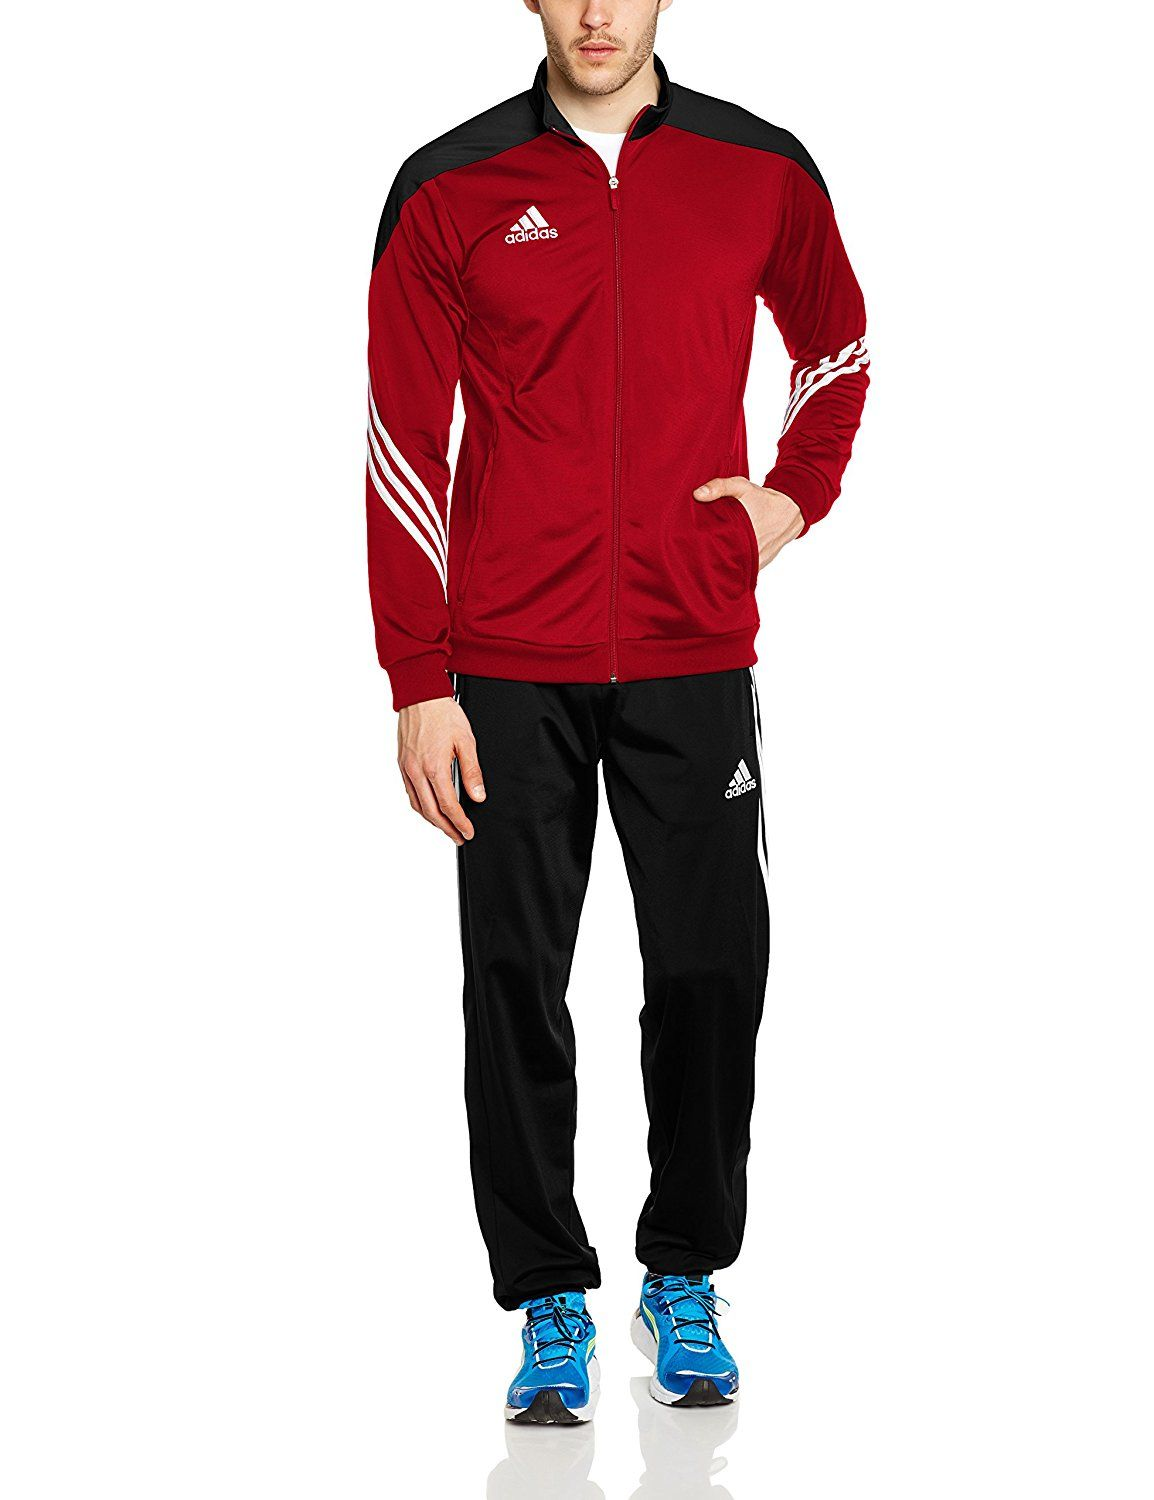 666a0175fb adidas Men's Sereno 14 Polyester Tracksuit - University Red/Black/White,  Medium